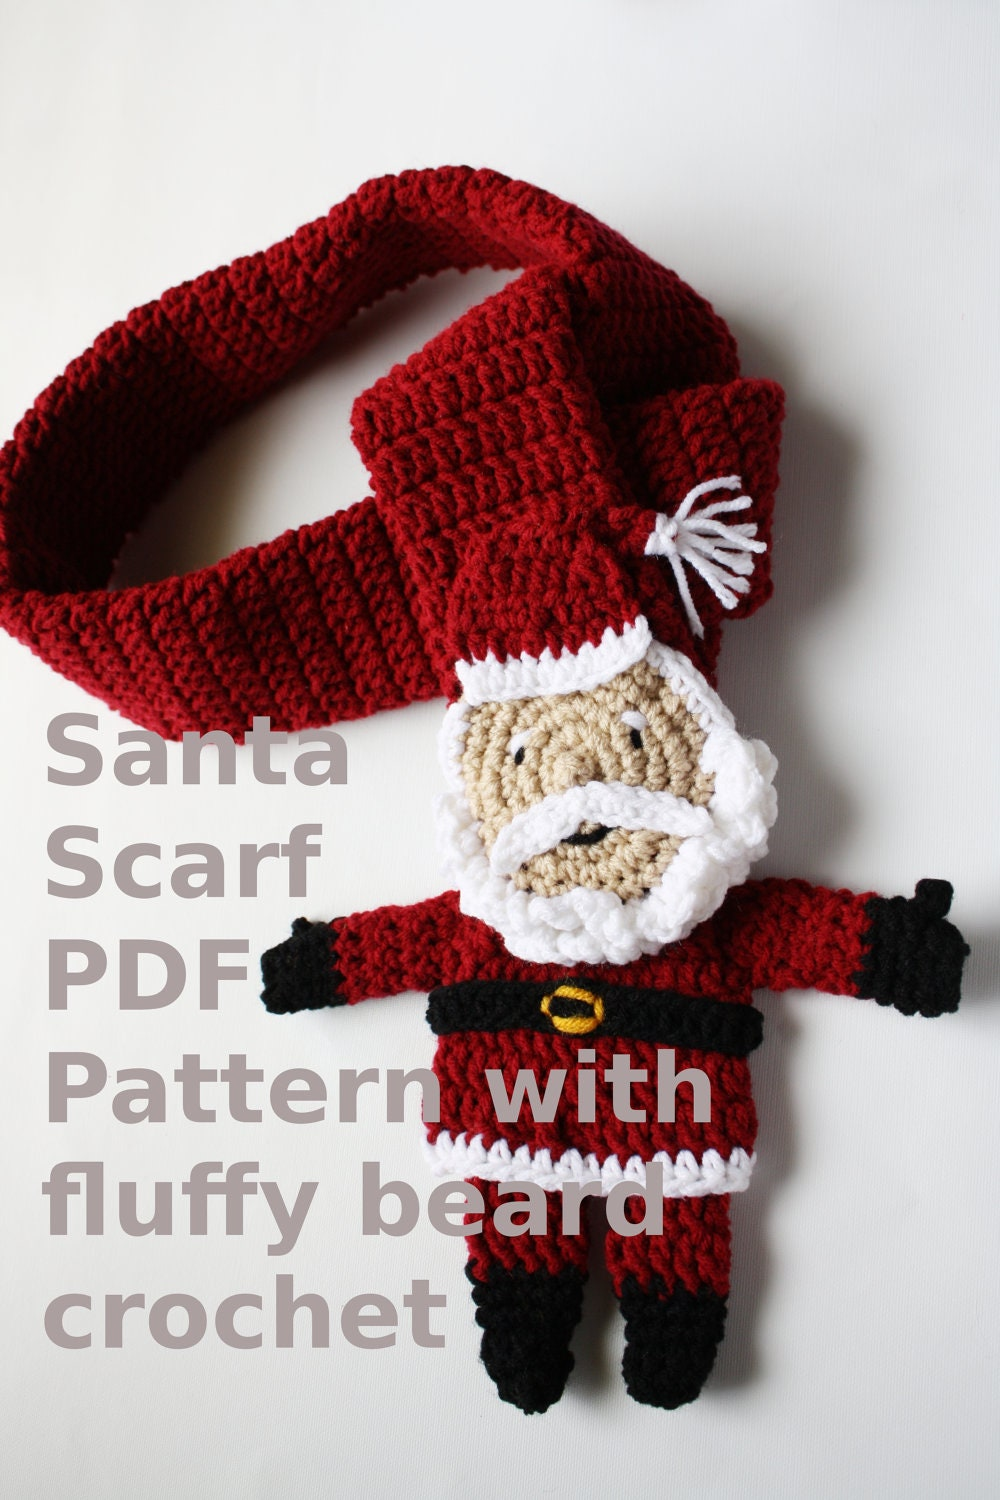 Instant download Santa Scarf with Fluffy Beard PDF PAttern